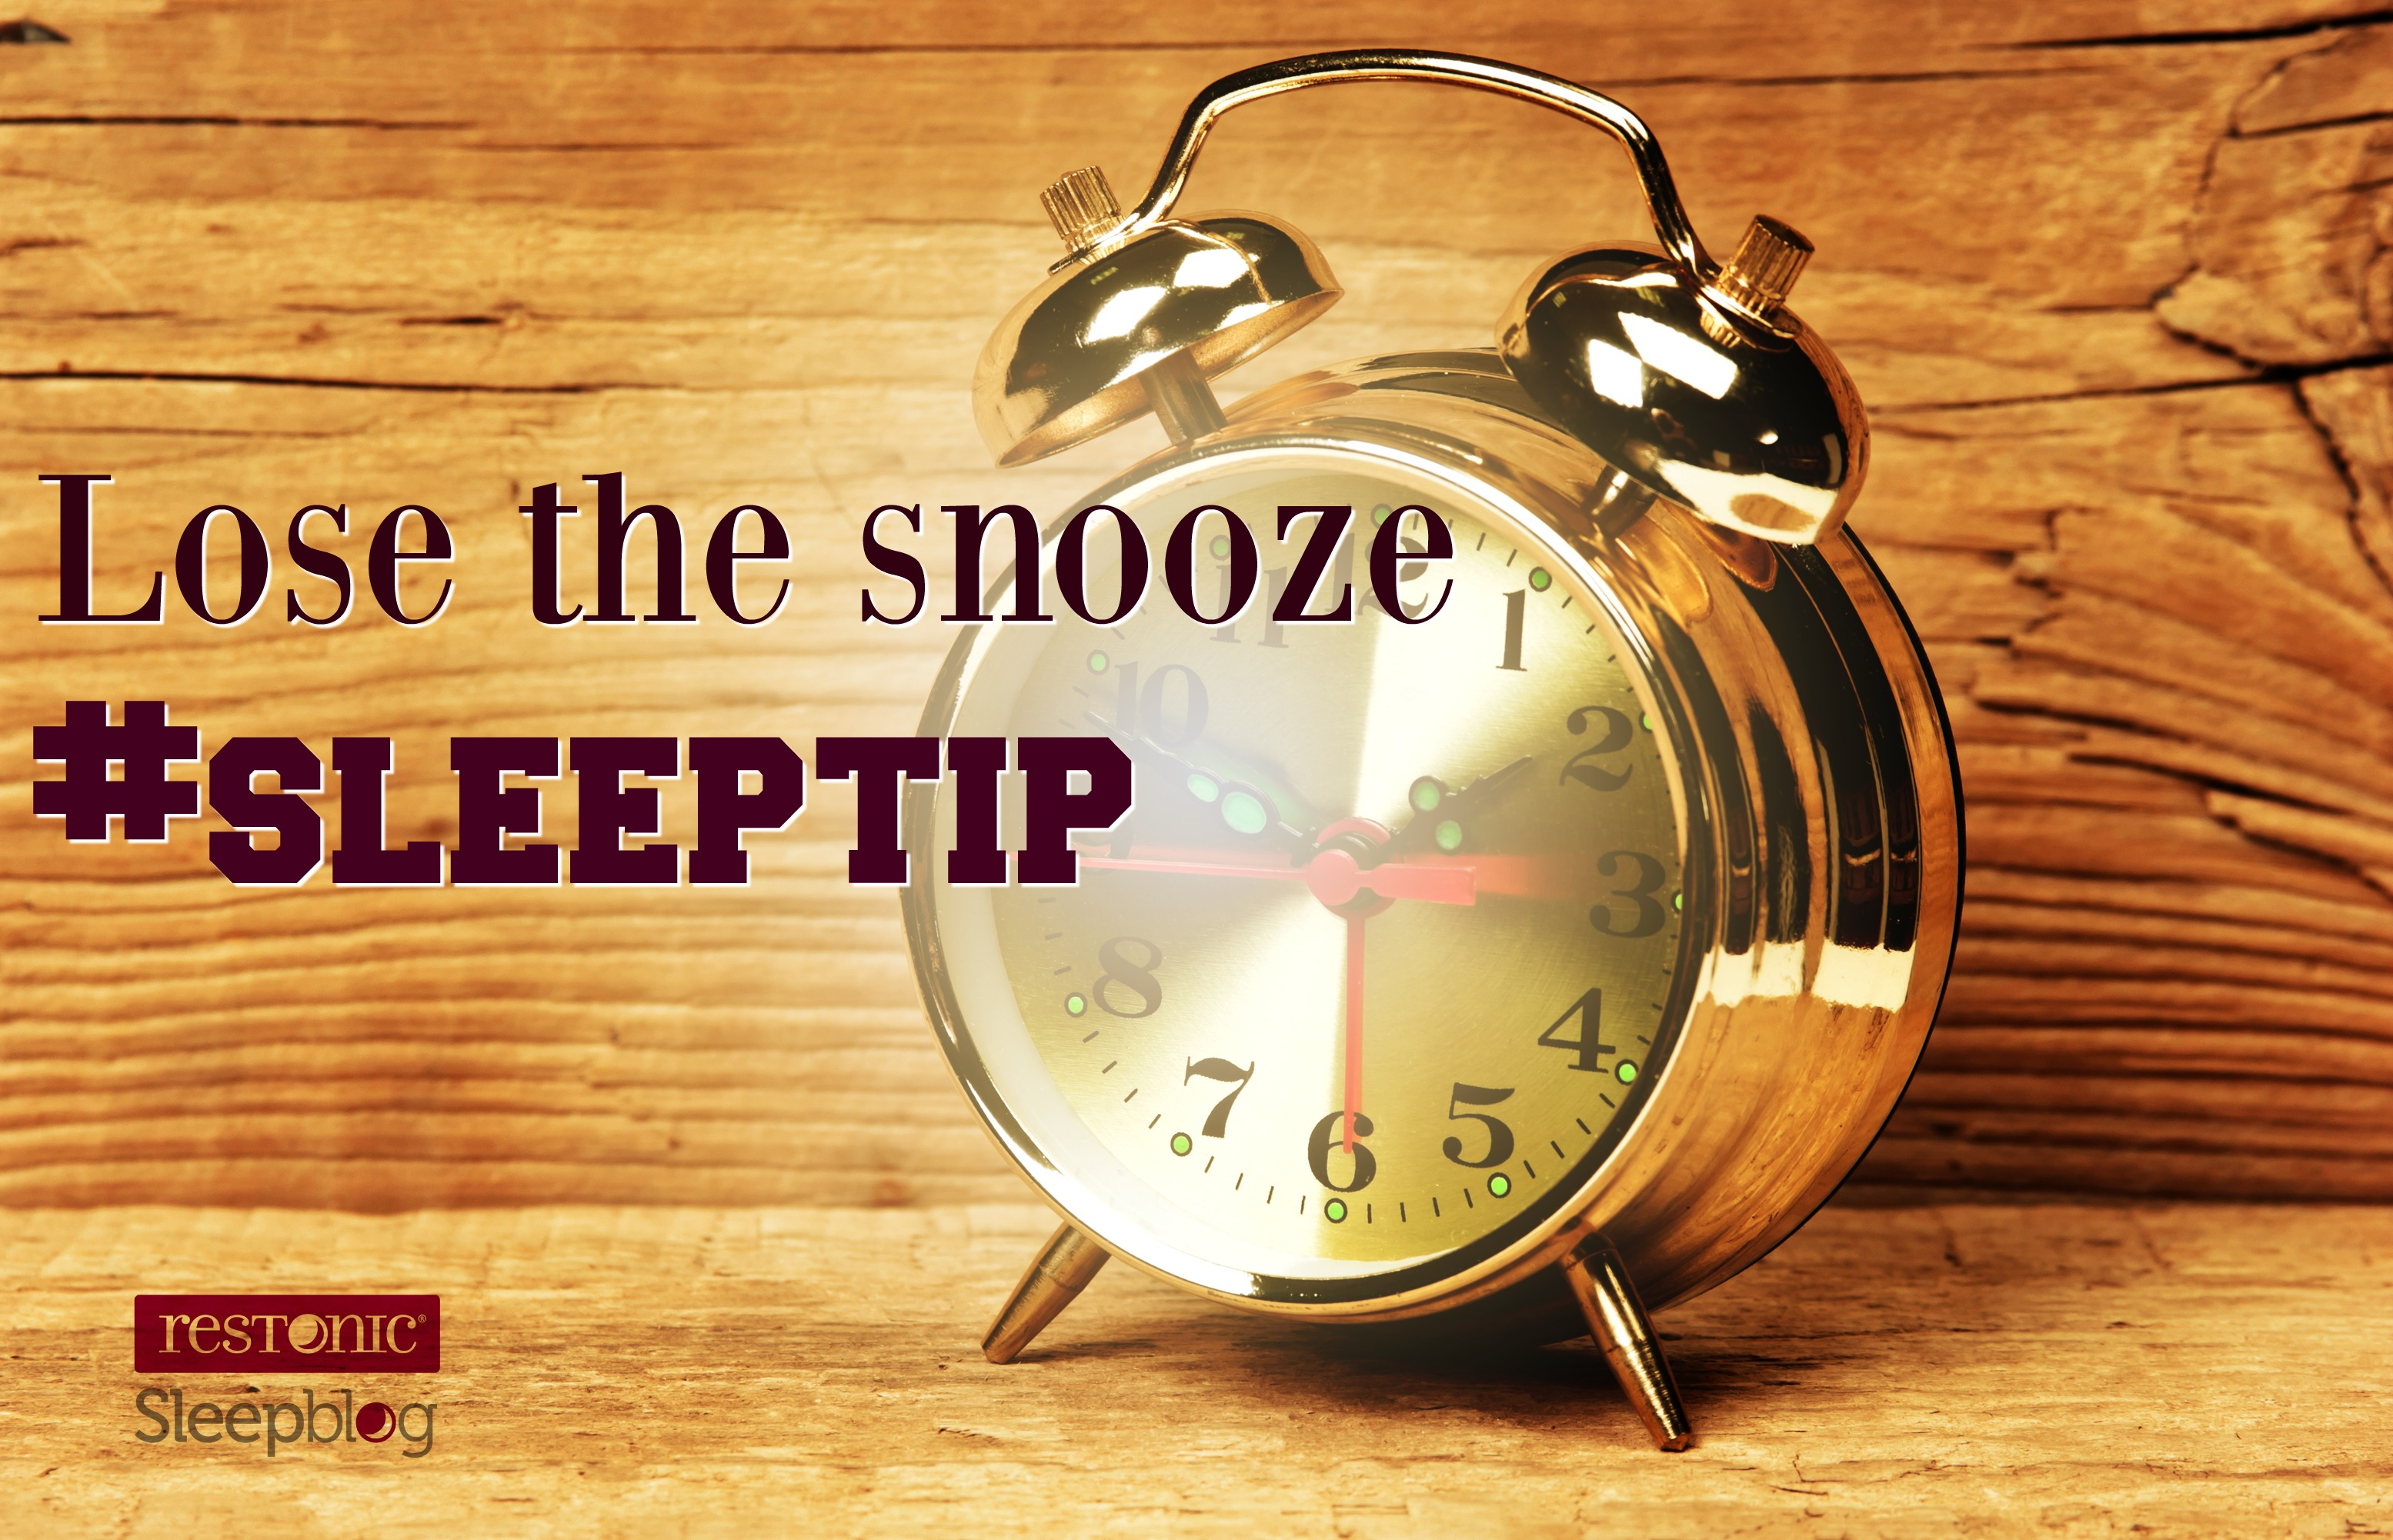 don't use the snooze button